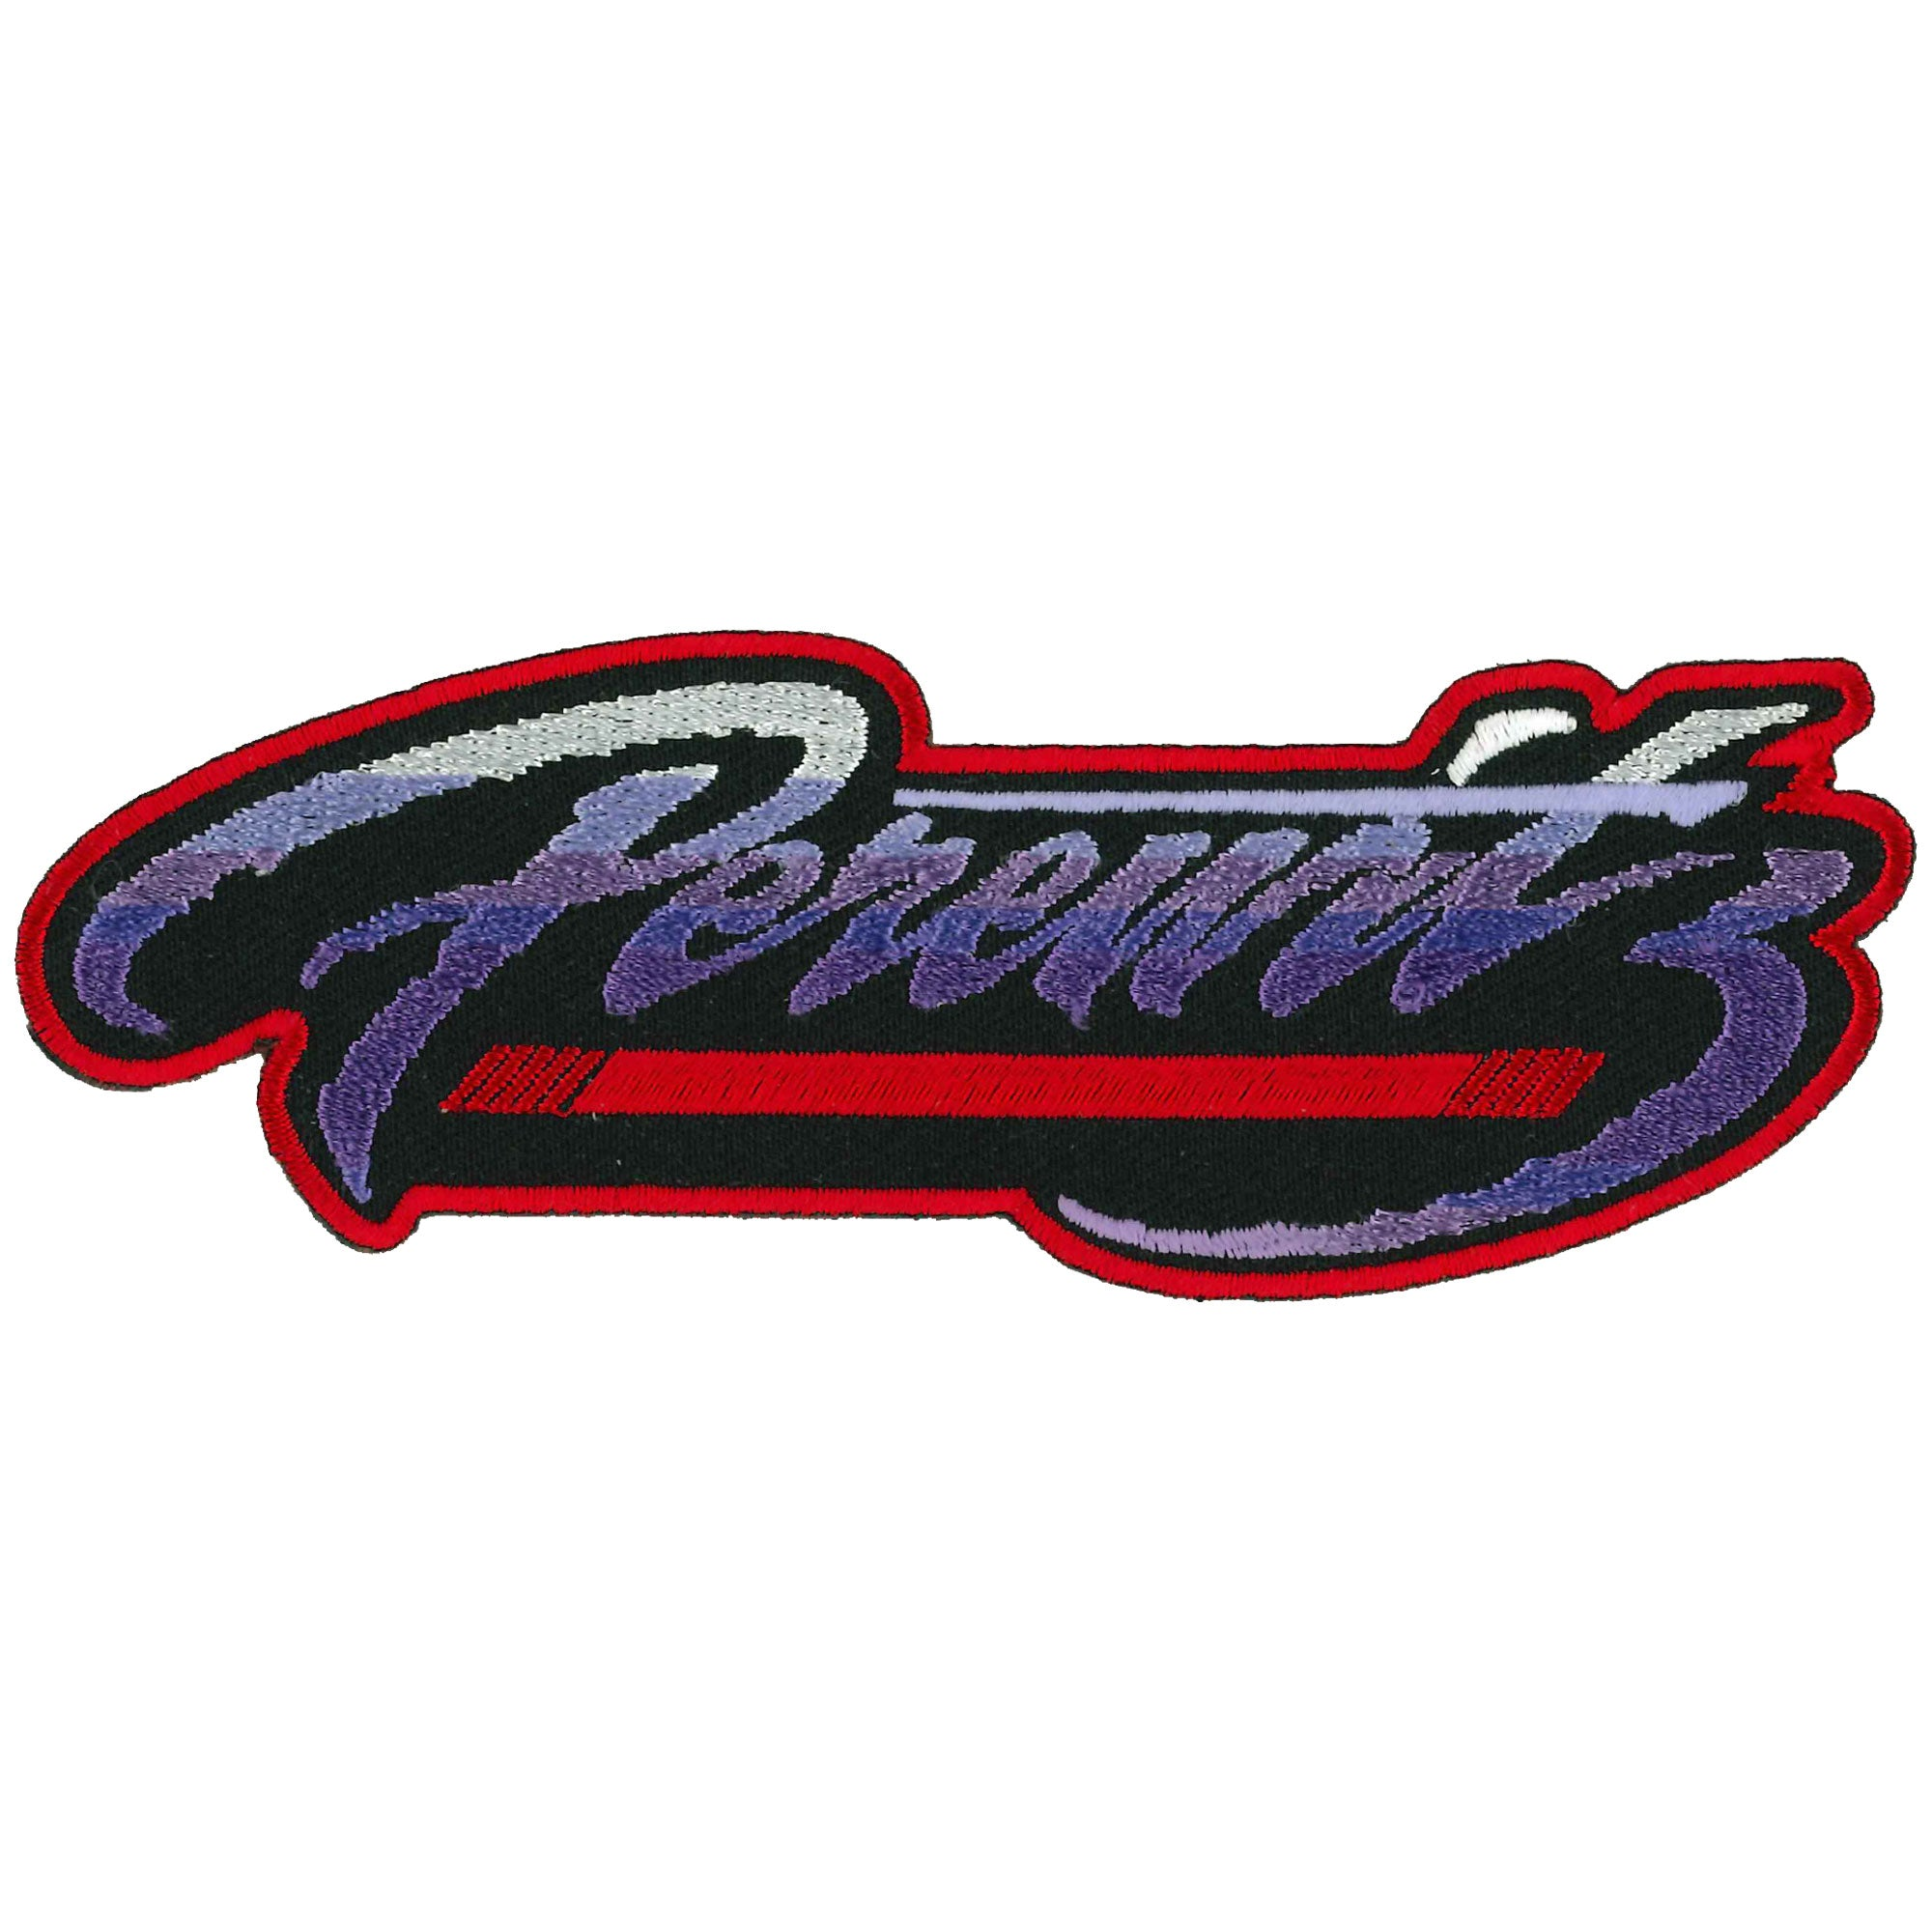 Perewitz Main Logo Patch 5""